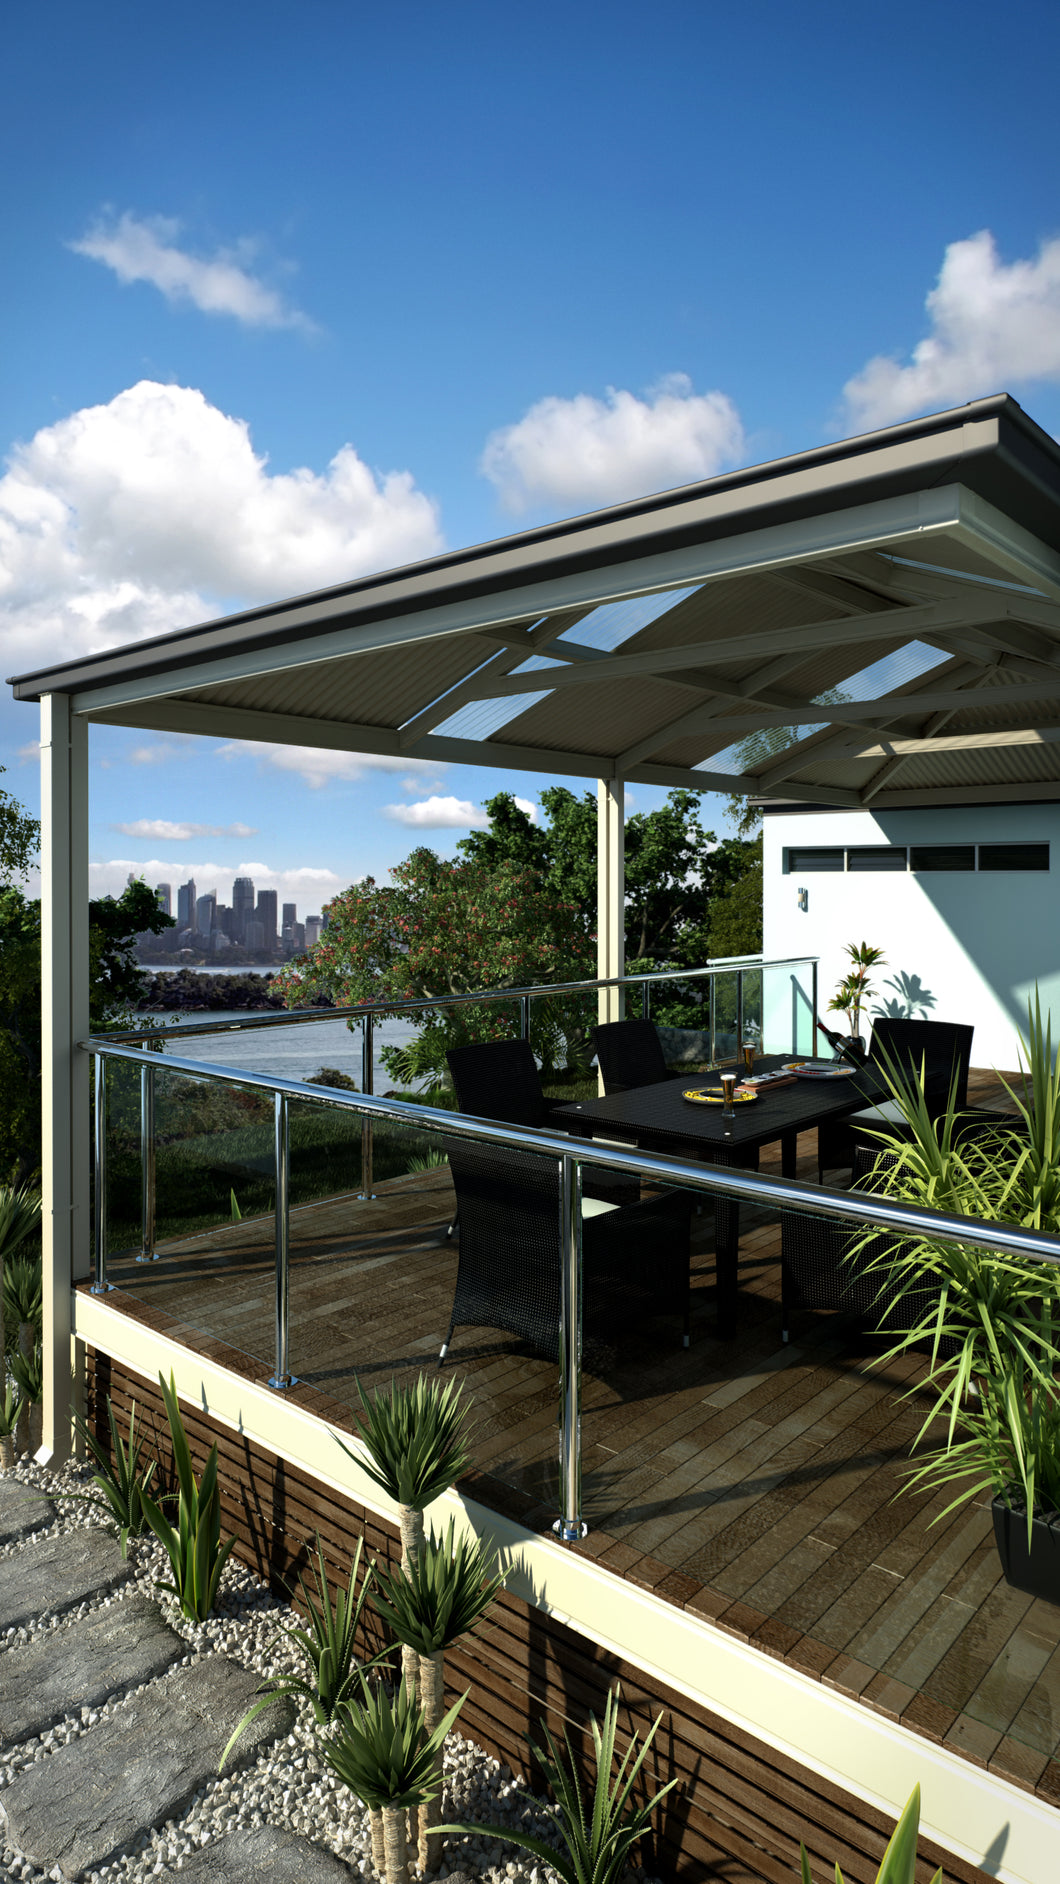 Deck and Roof - 8m x 4m - from $33,588.00 Inc GST.